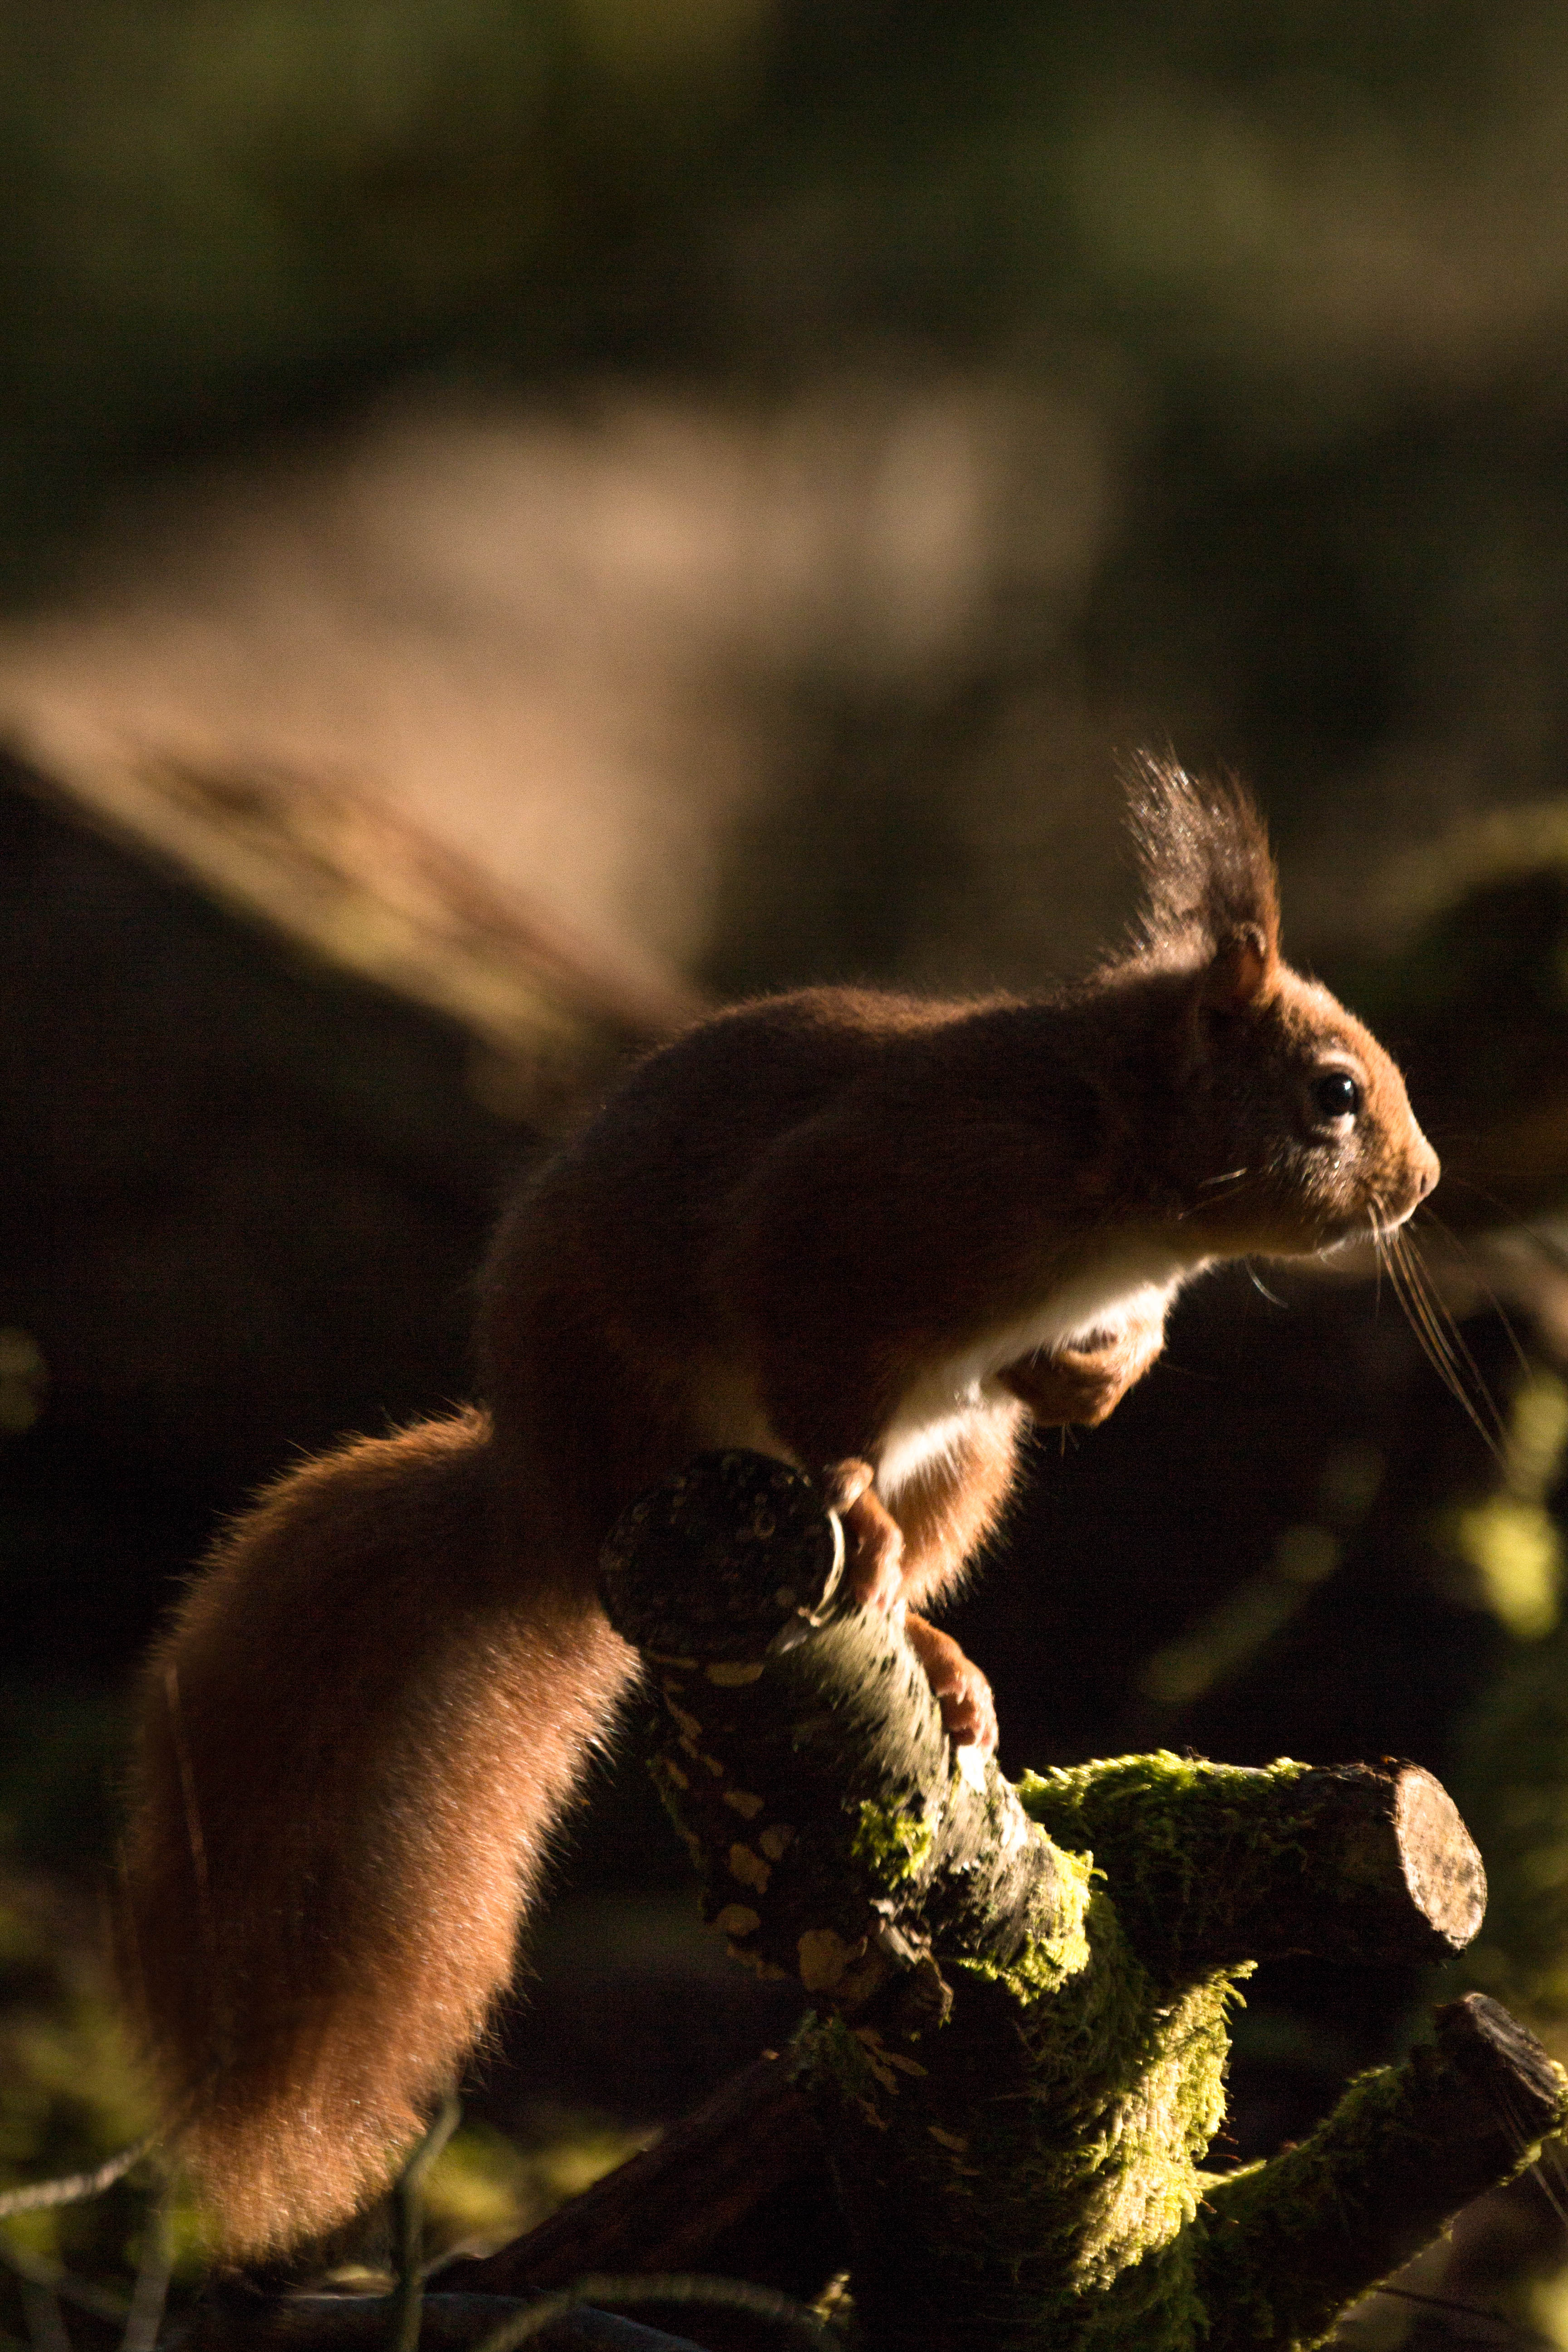 A red squirrel sat in heavy shadows, with only its face and tail highlighted.